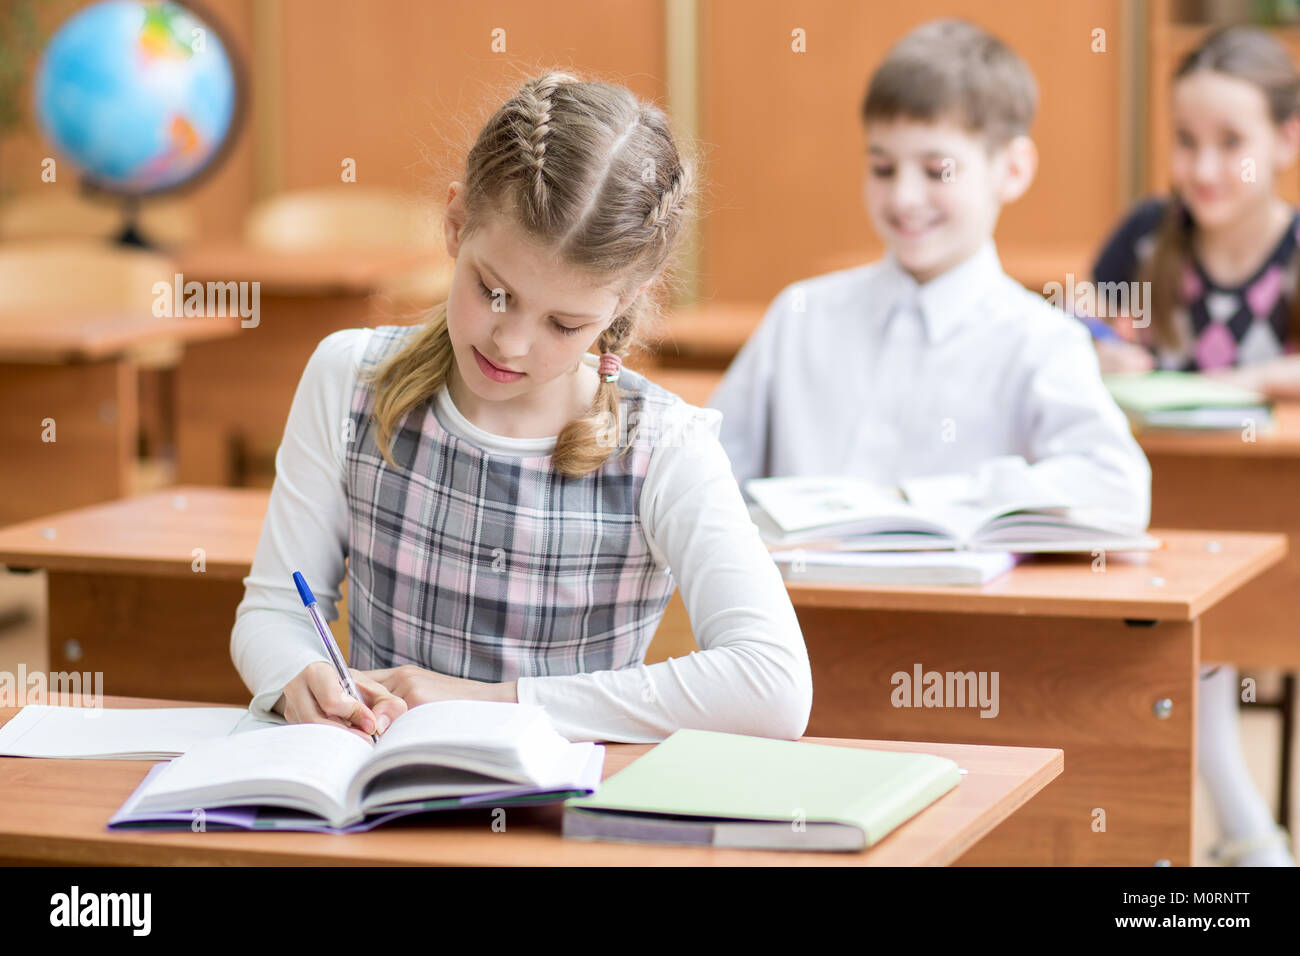 Education, school, learning and children concept - group of school kids with pens and textbooks writing test in Stock Photo